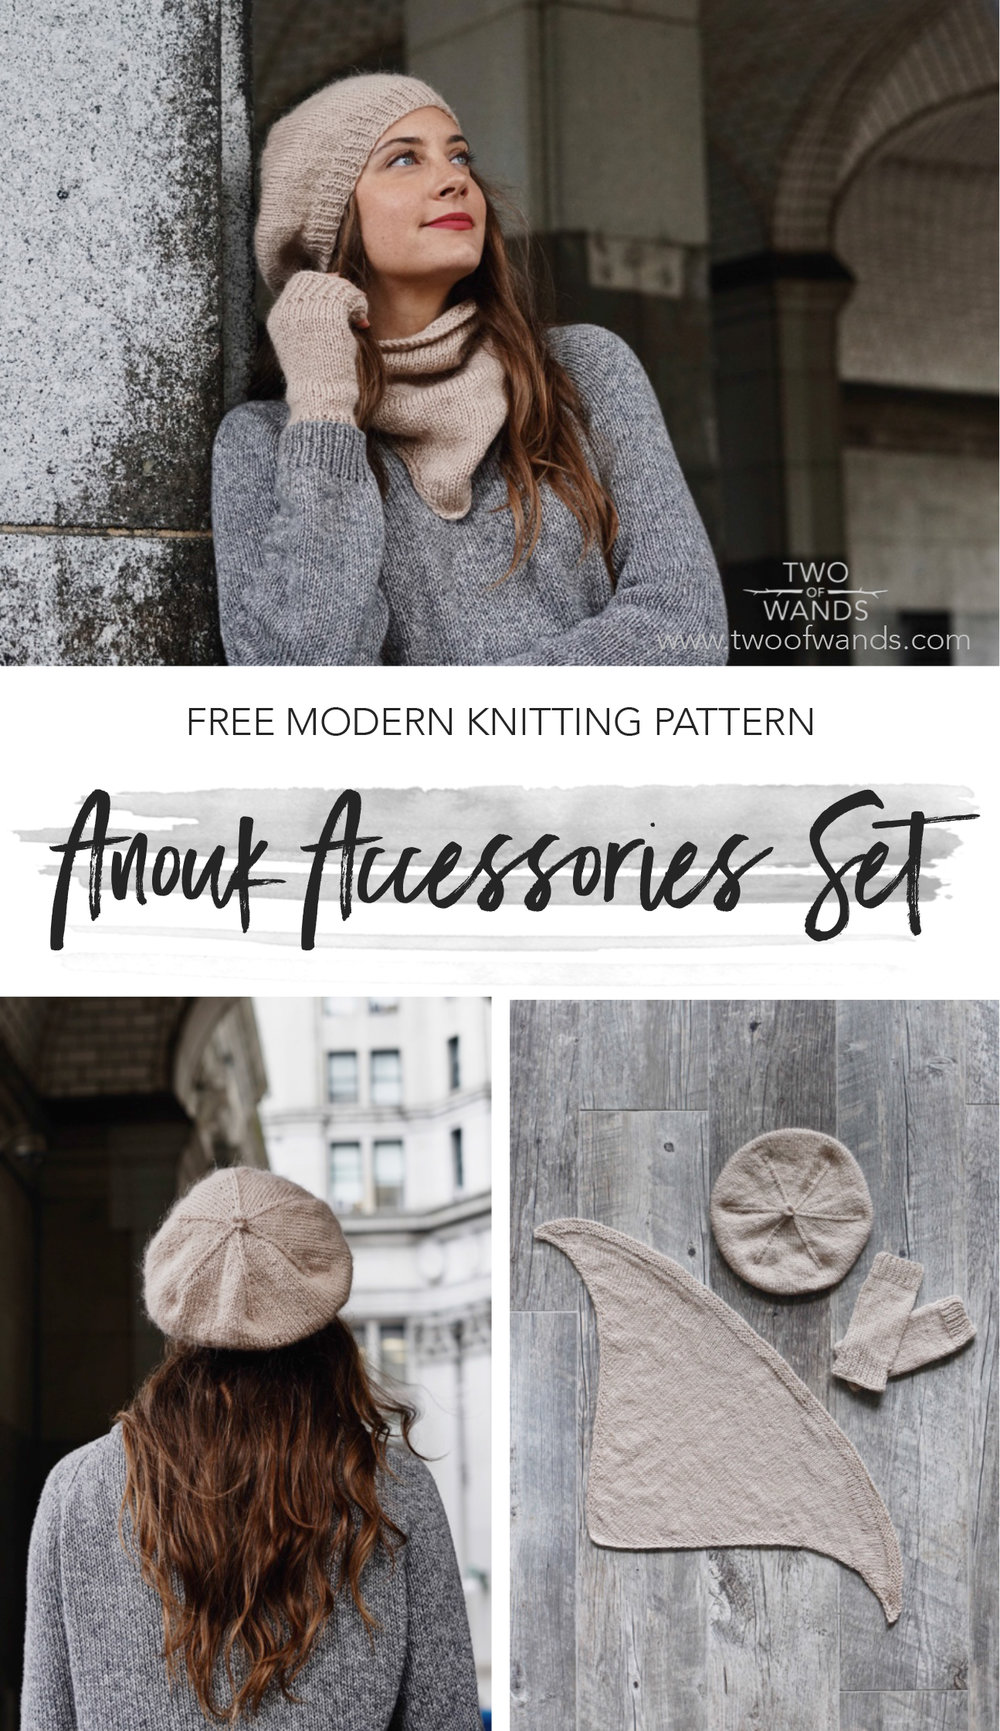 Anouk Accessories Set pattern by Two of Wands